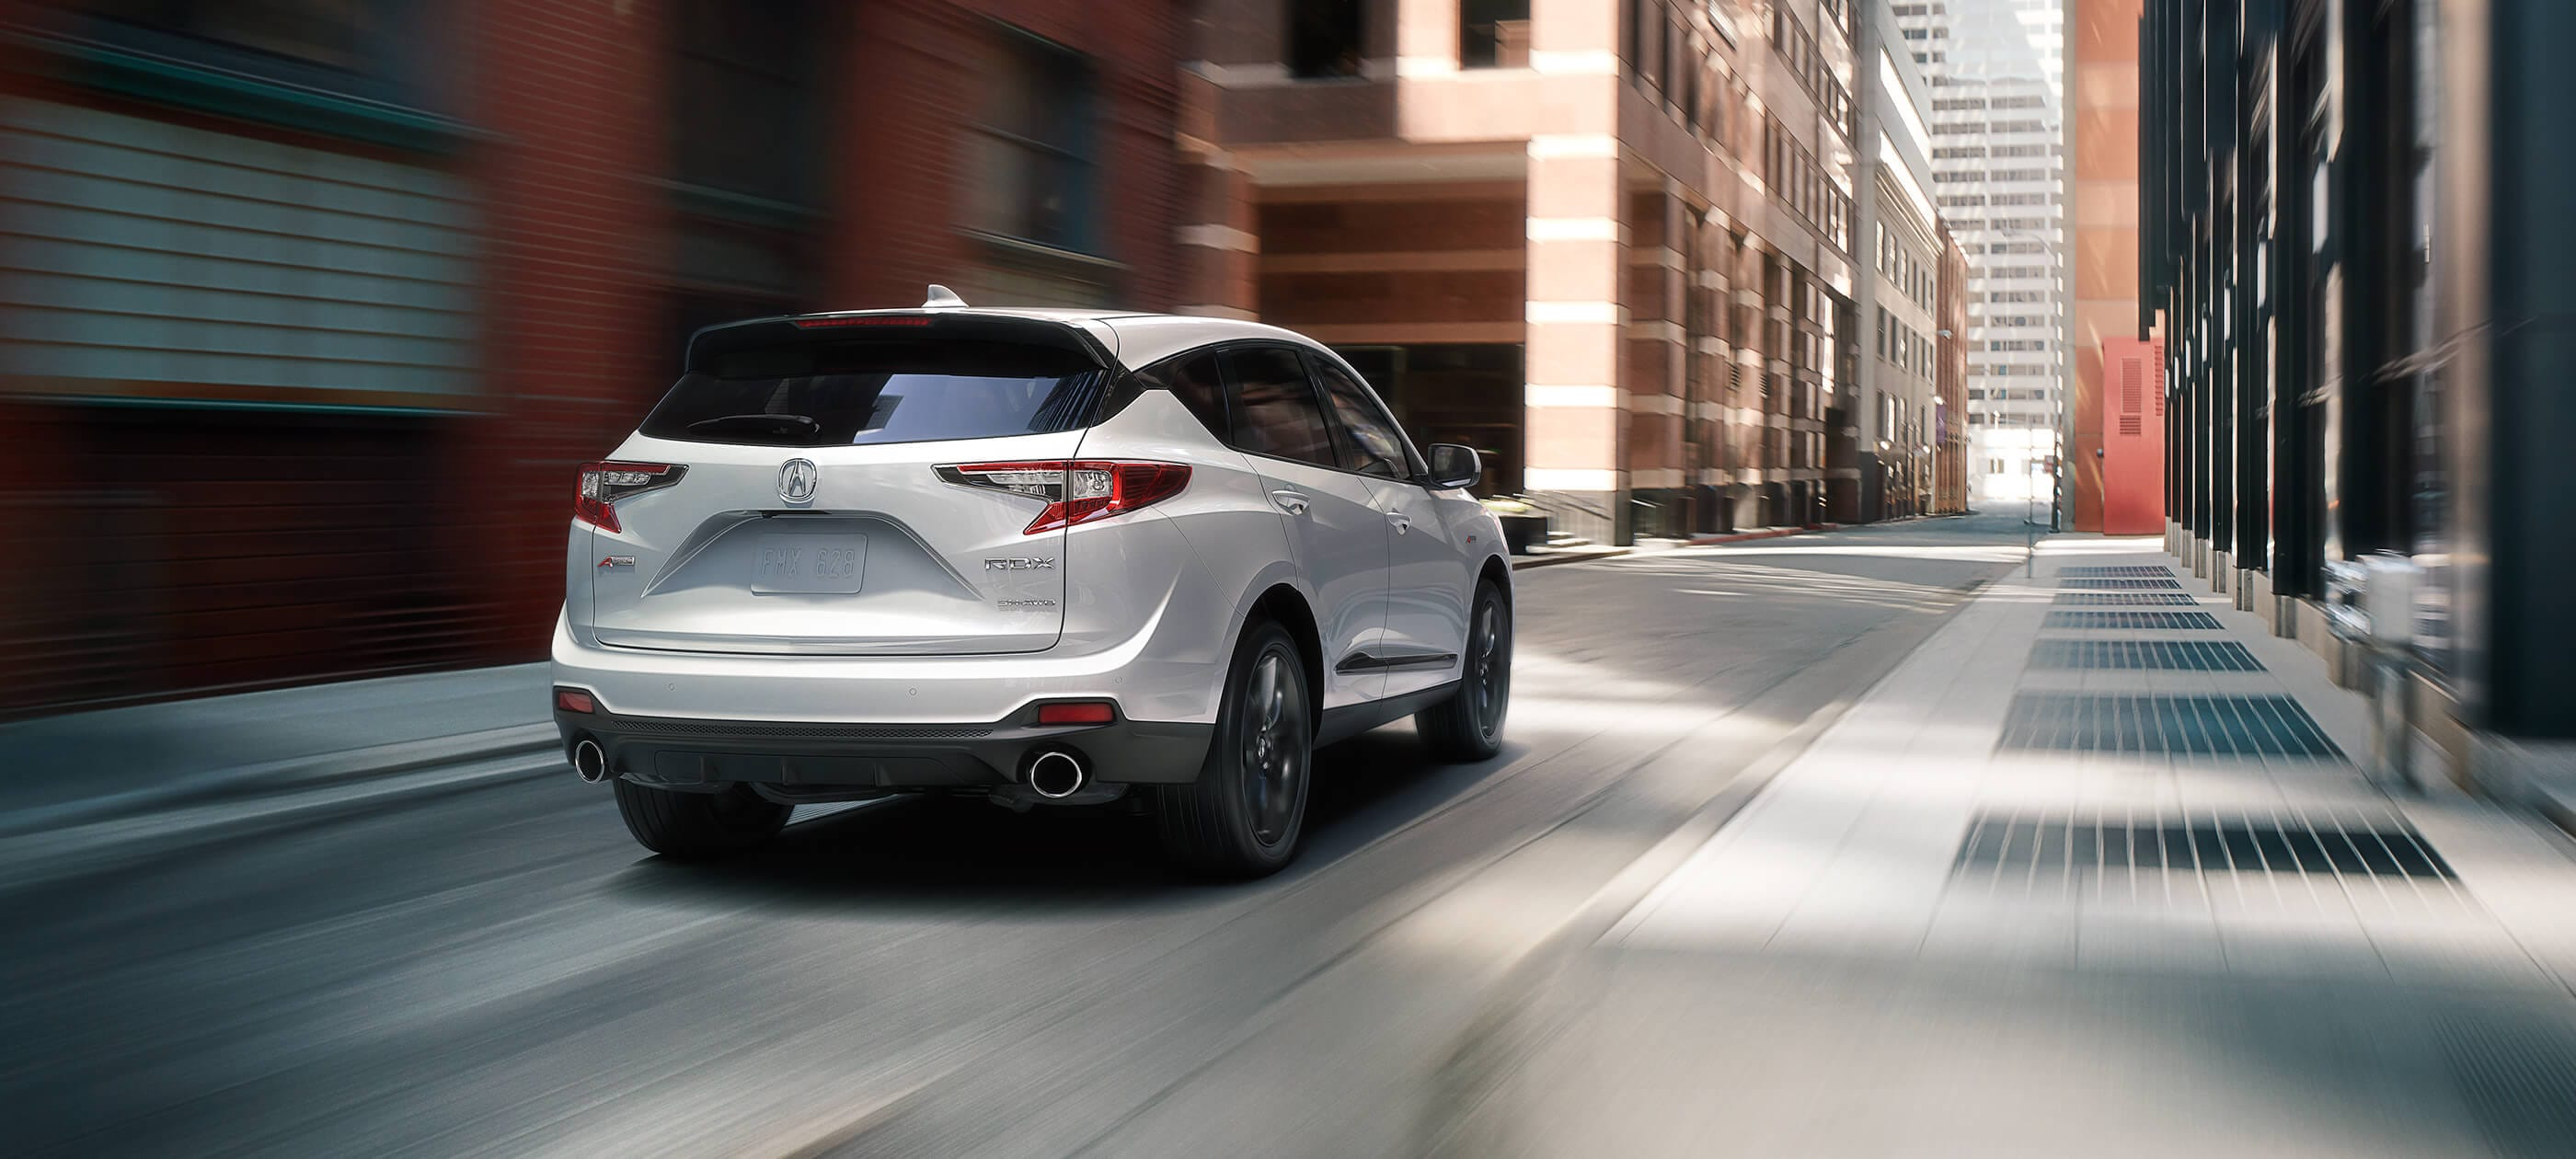 2020 Acura Rdx Luxury Crossover Suv Louisiana Acura Dealers